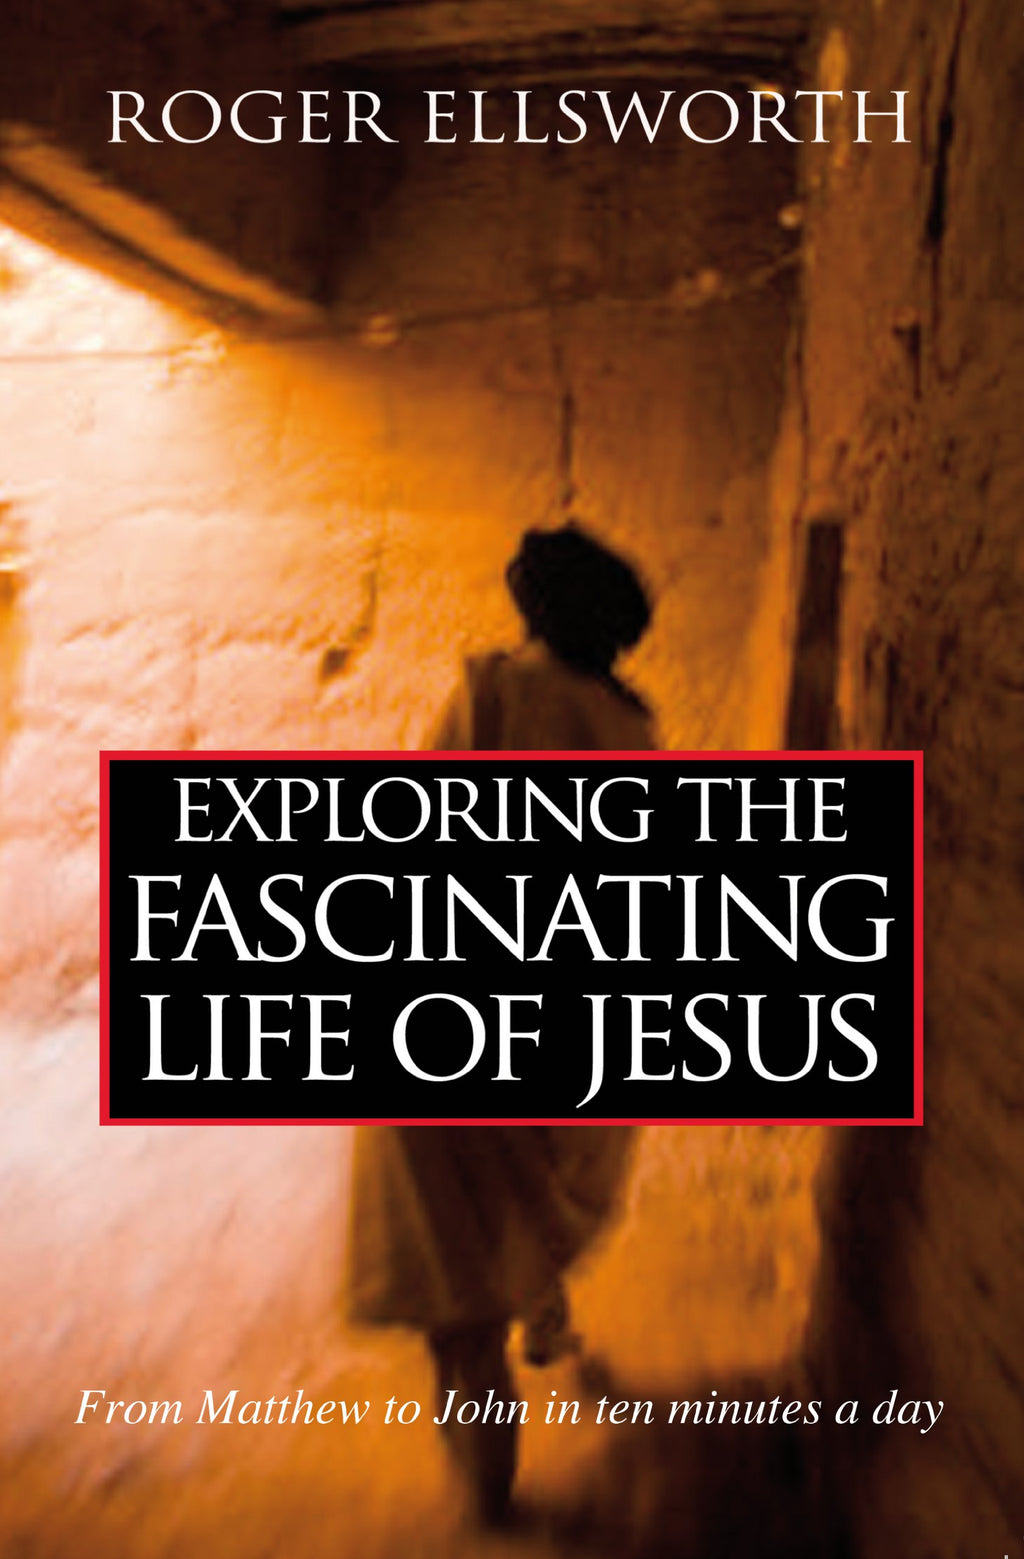 Exploring the Fascinating Life of Jesus